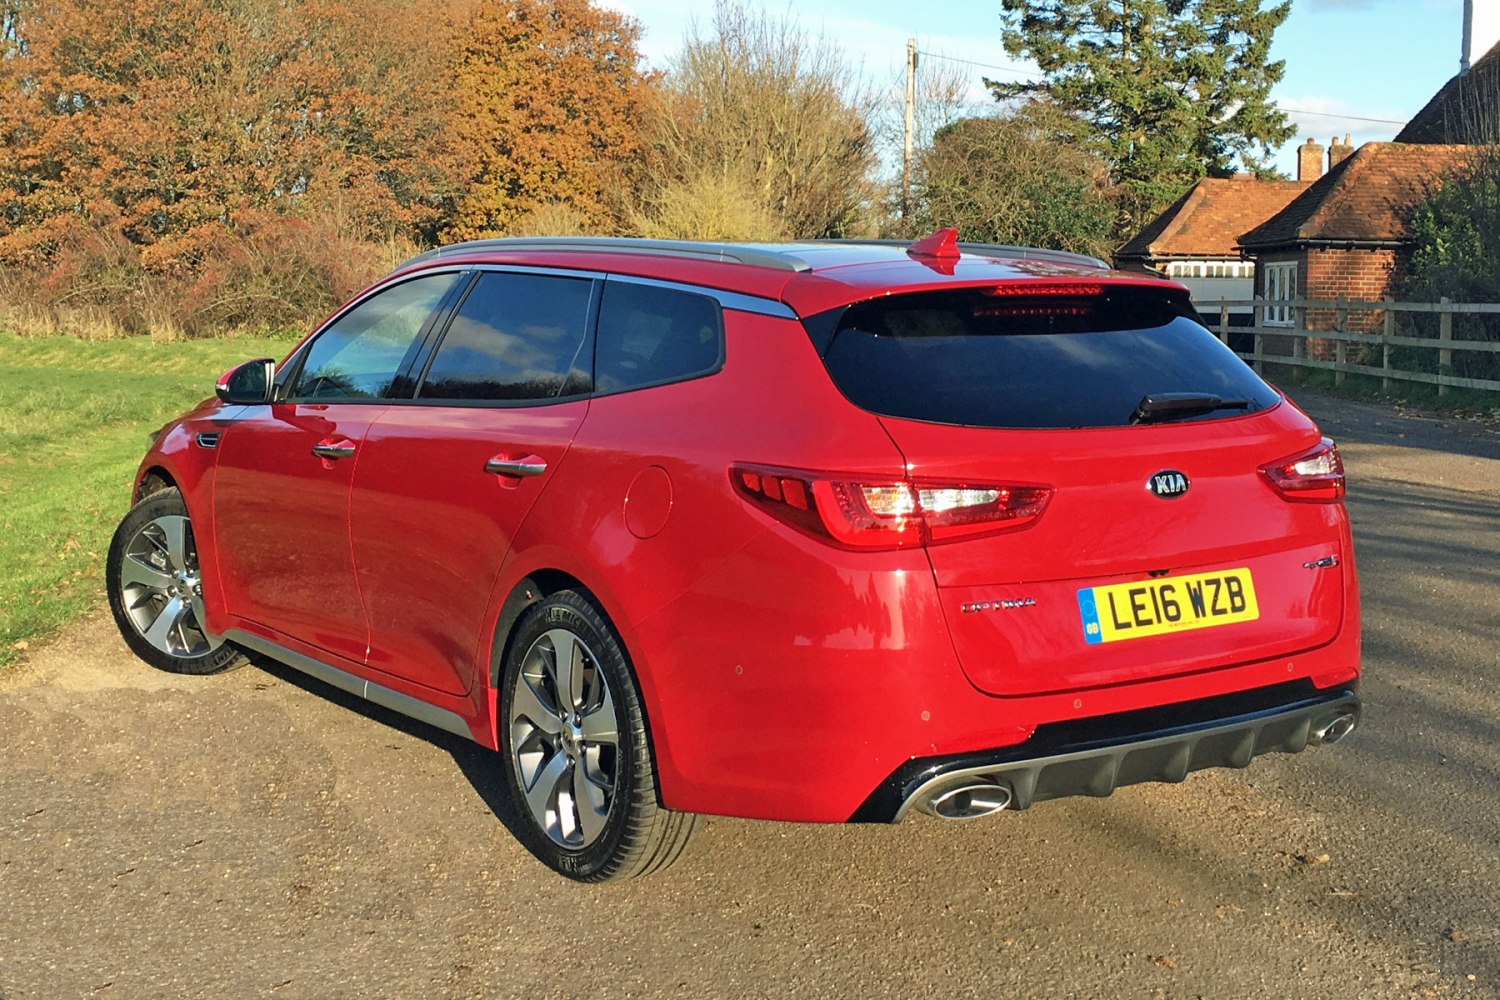 Introduction: Kia Optima SW 1.7 CRDi GT-Line S estate